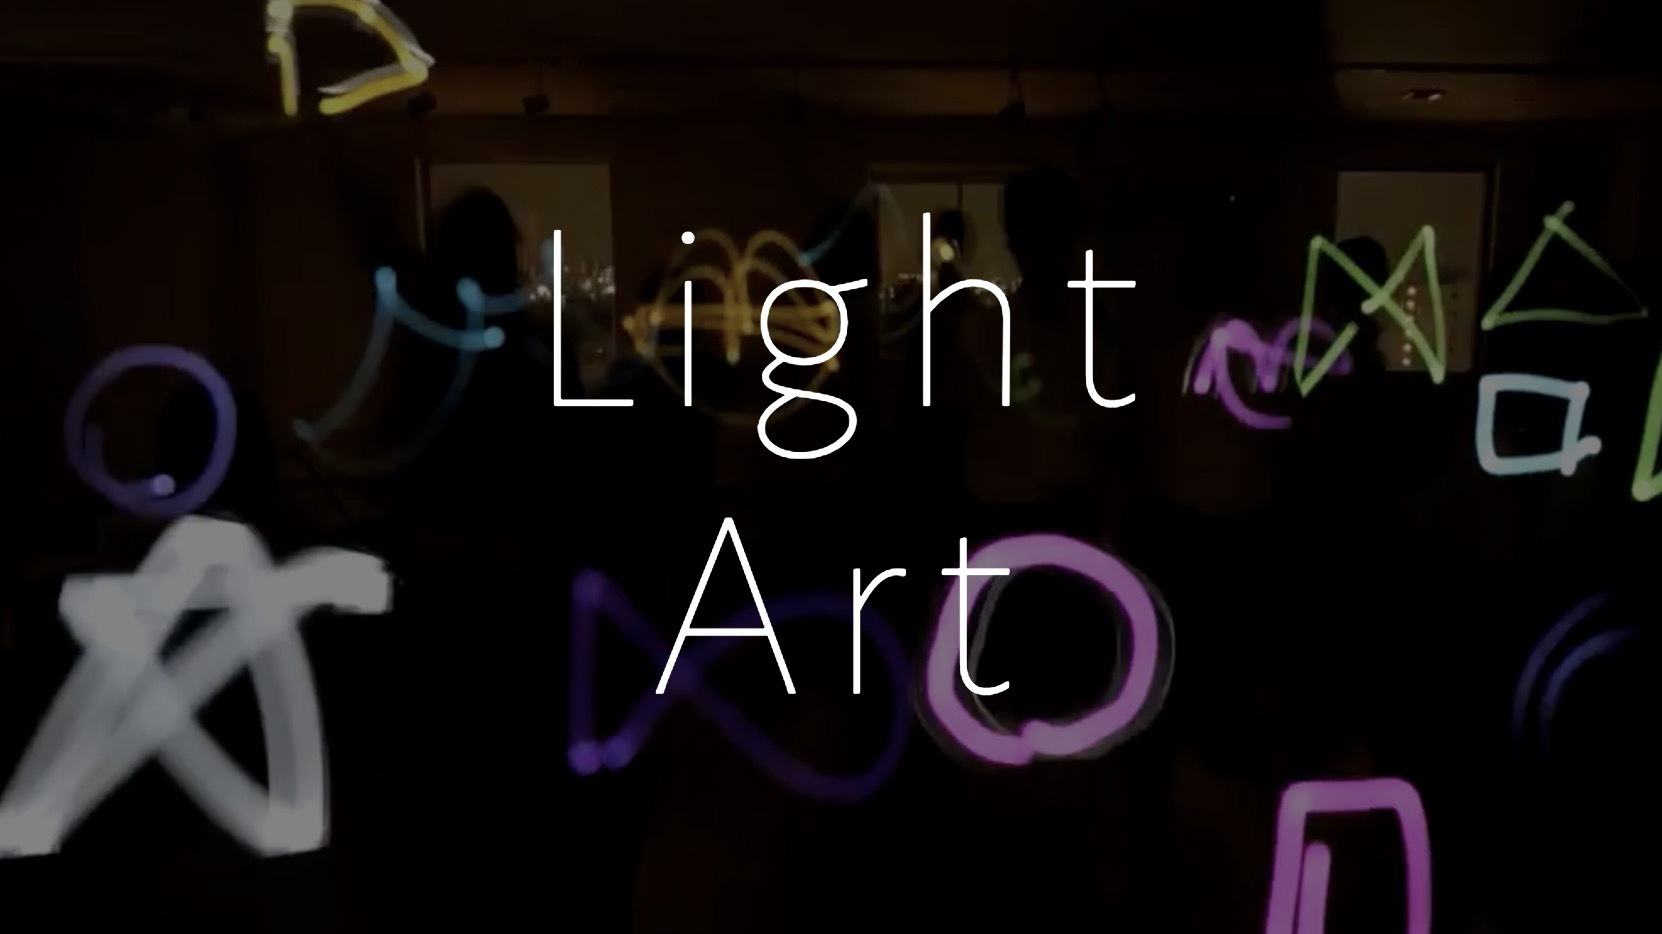 lightartimage2.jpg